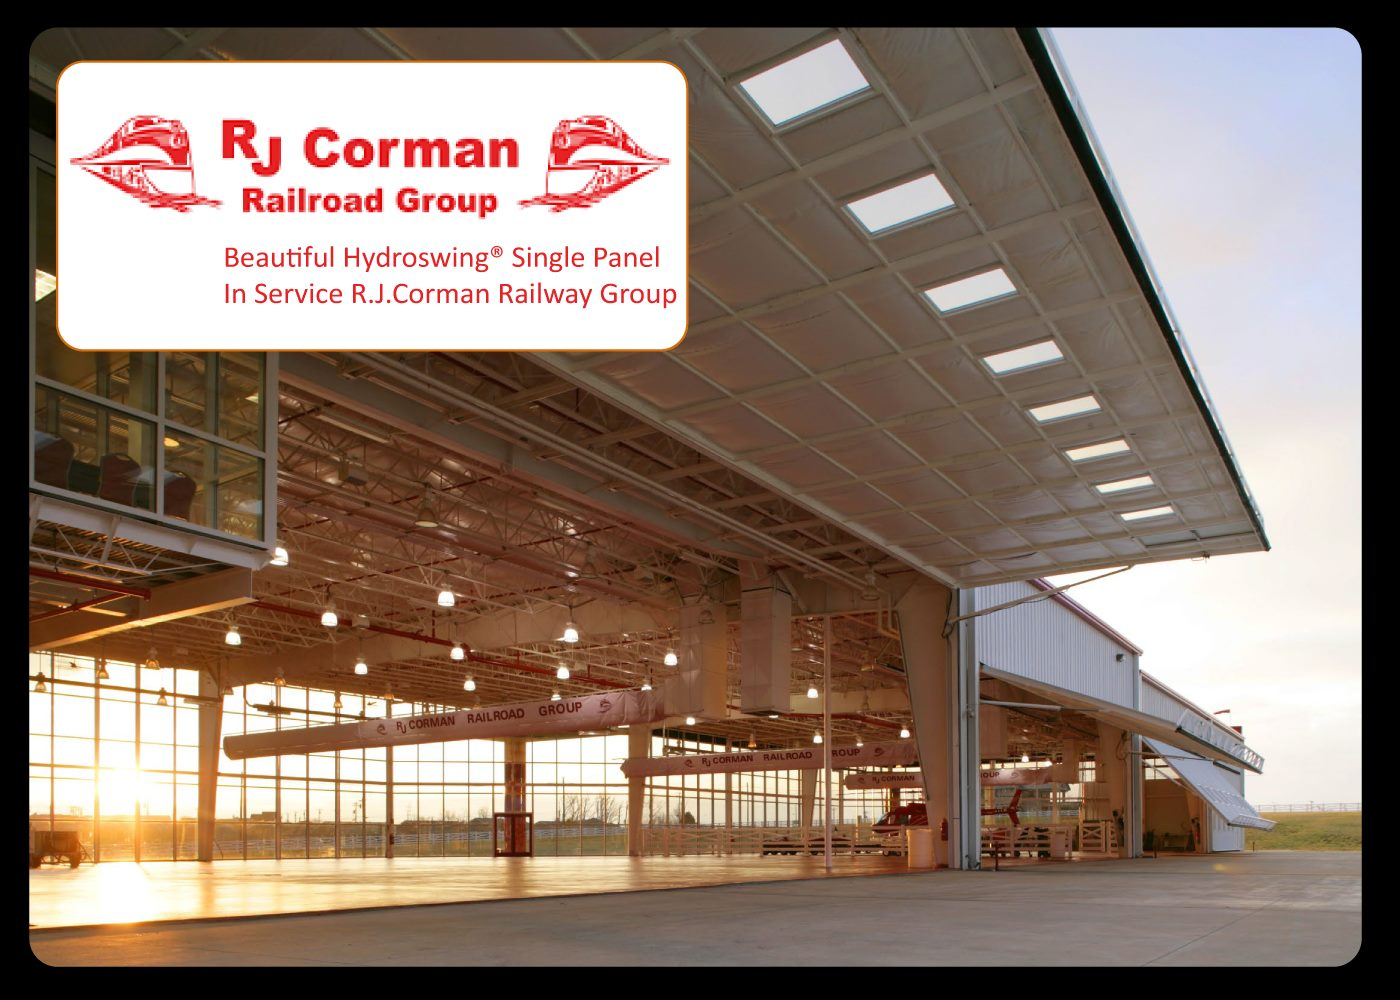 rj corman railroad group helicopter hangar